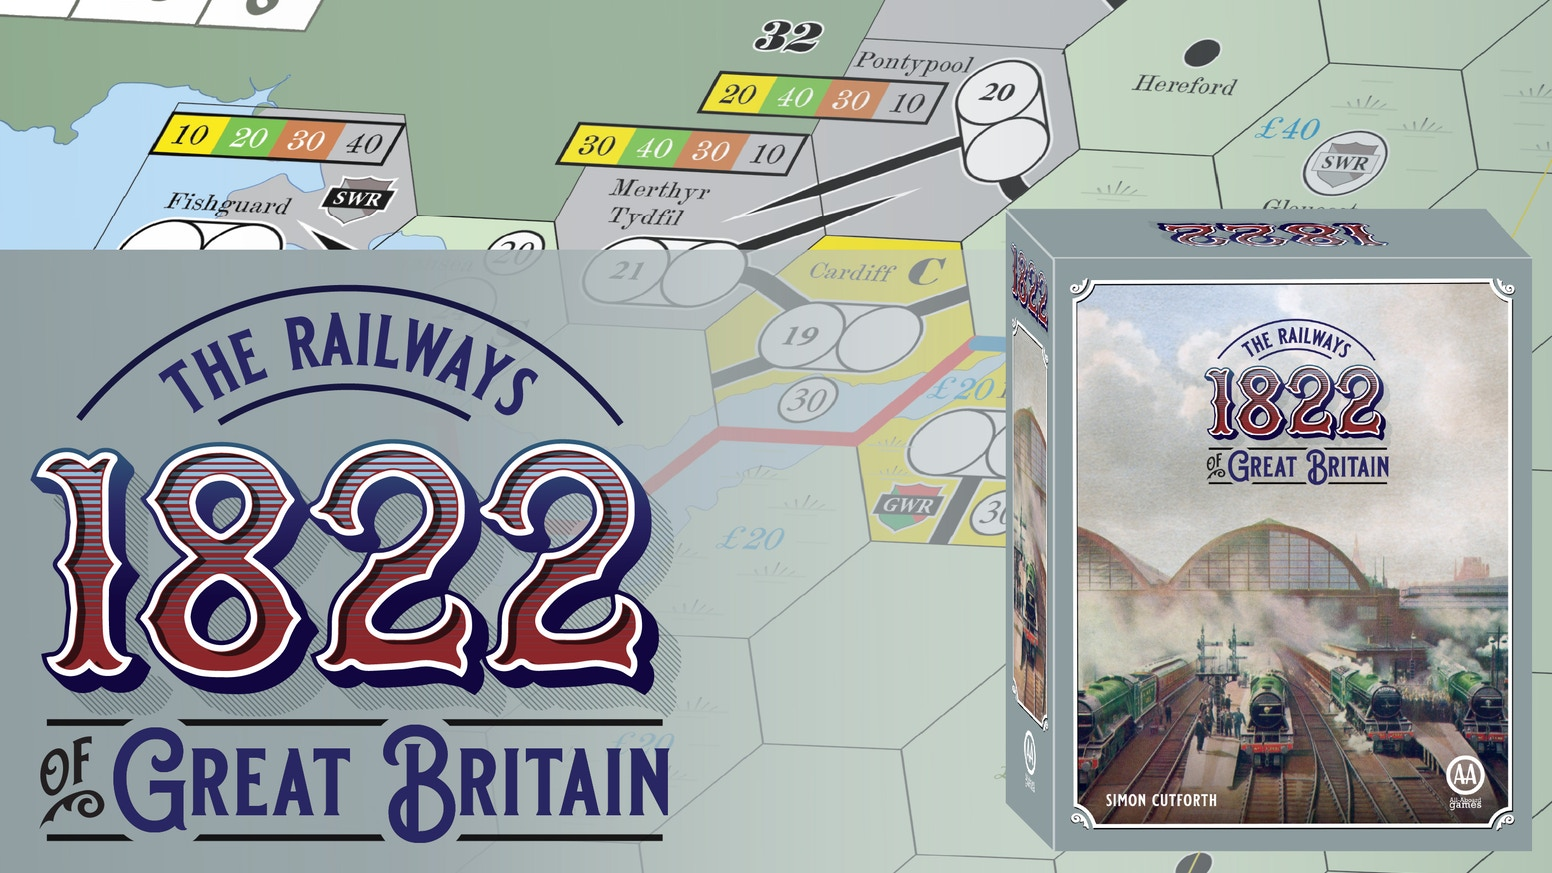 Simon Cutforth's innovative title set in Great Britain that grew an entire new branch of 18xx!